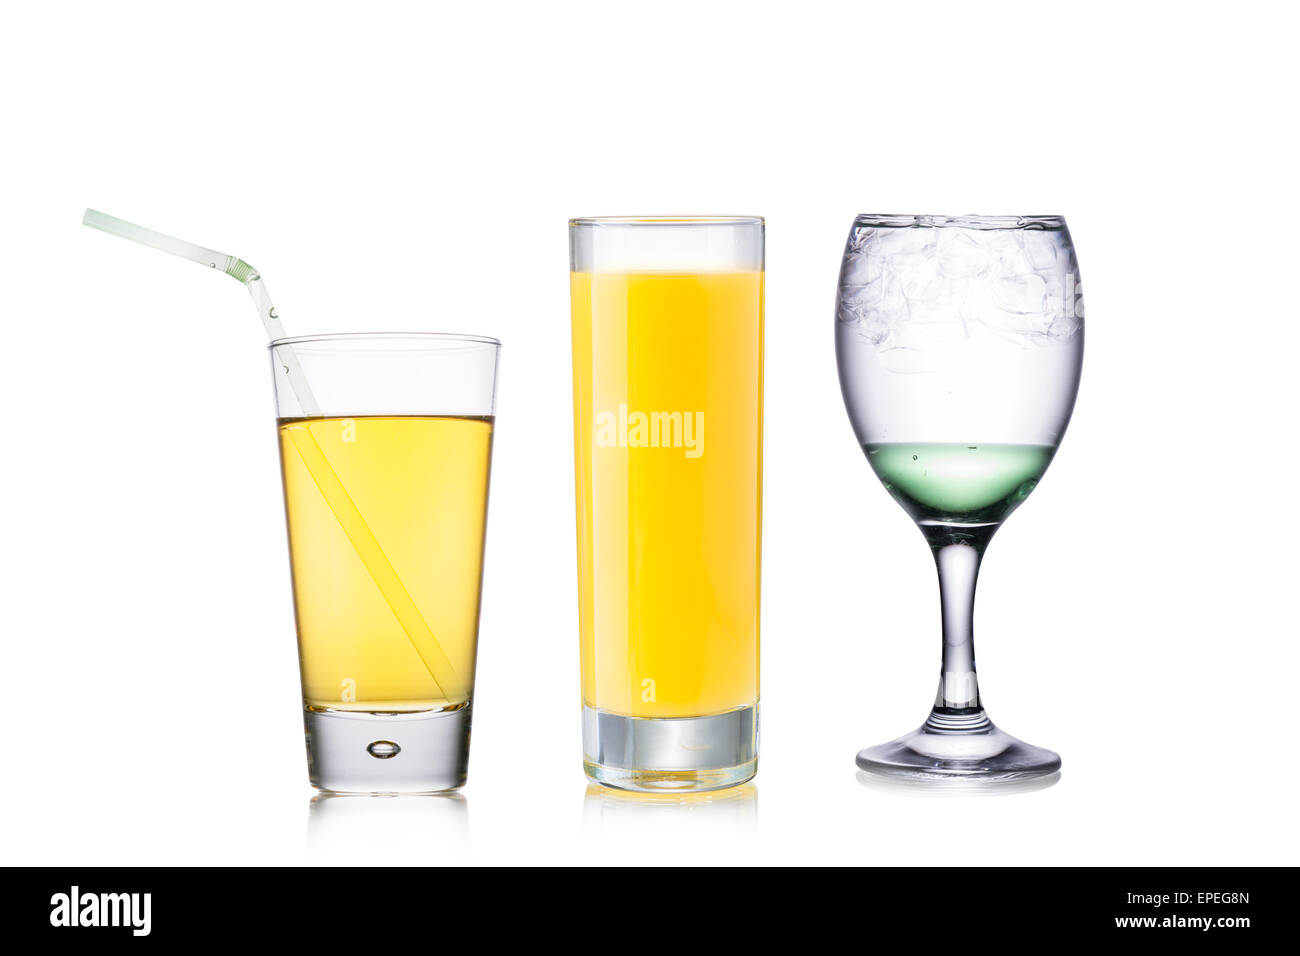 Set of beautiful backlit glasses filled with colored opaque and transparent liquids - Stock Image